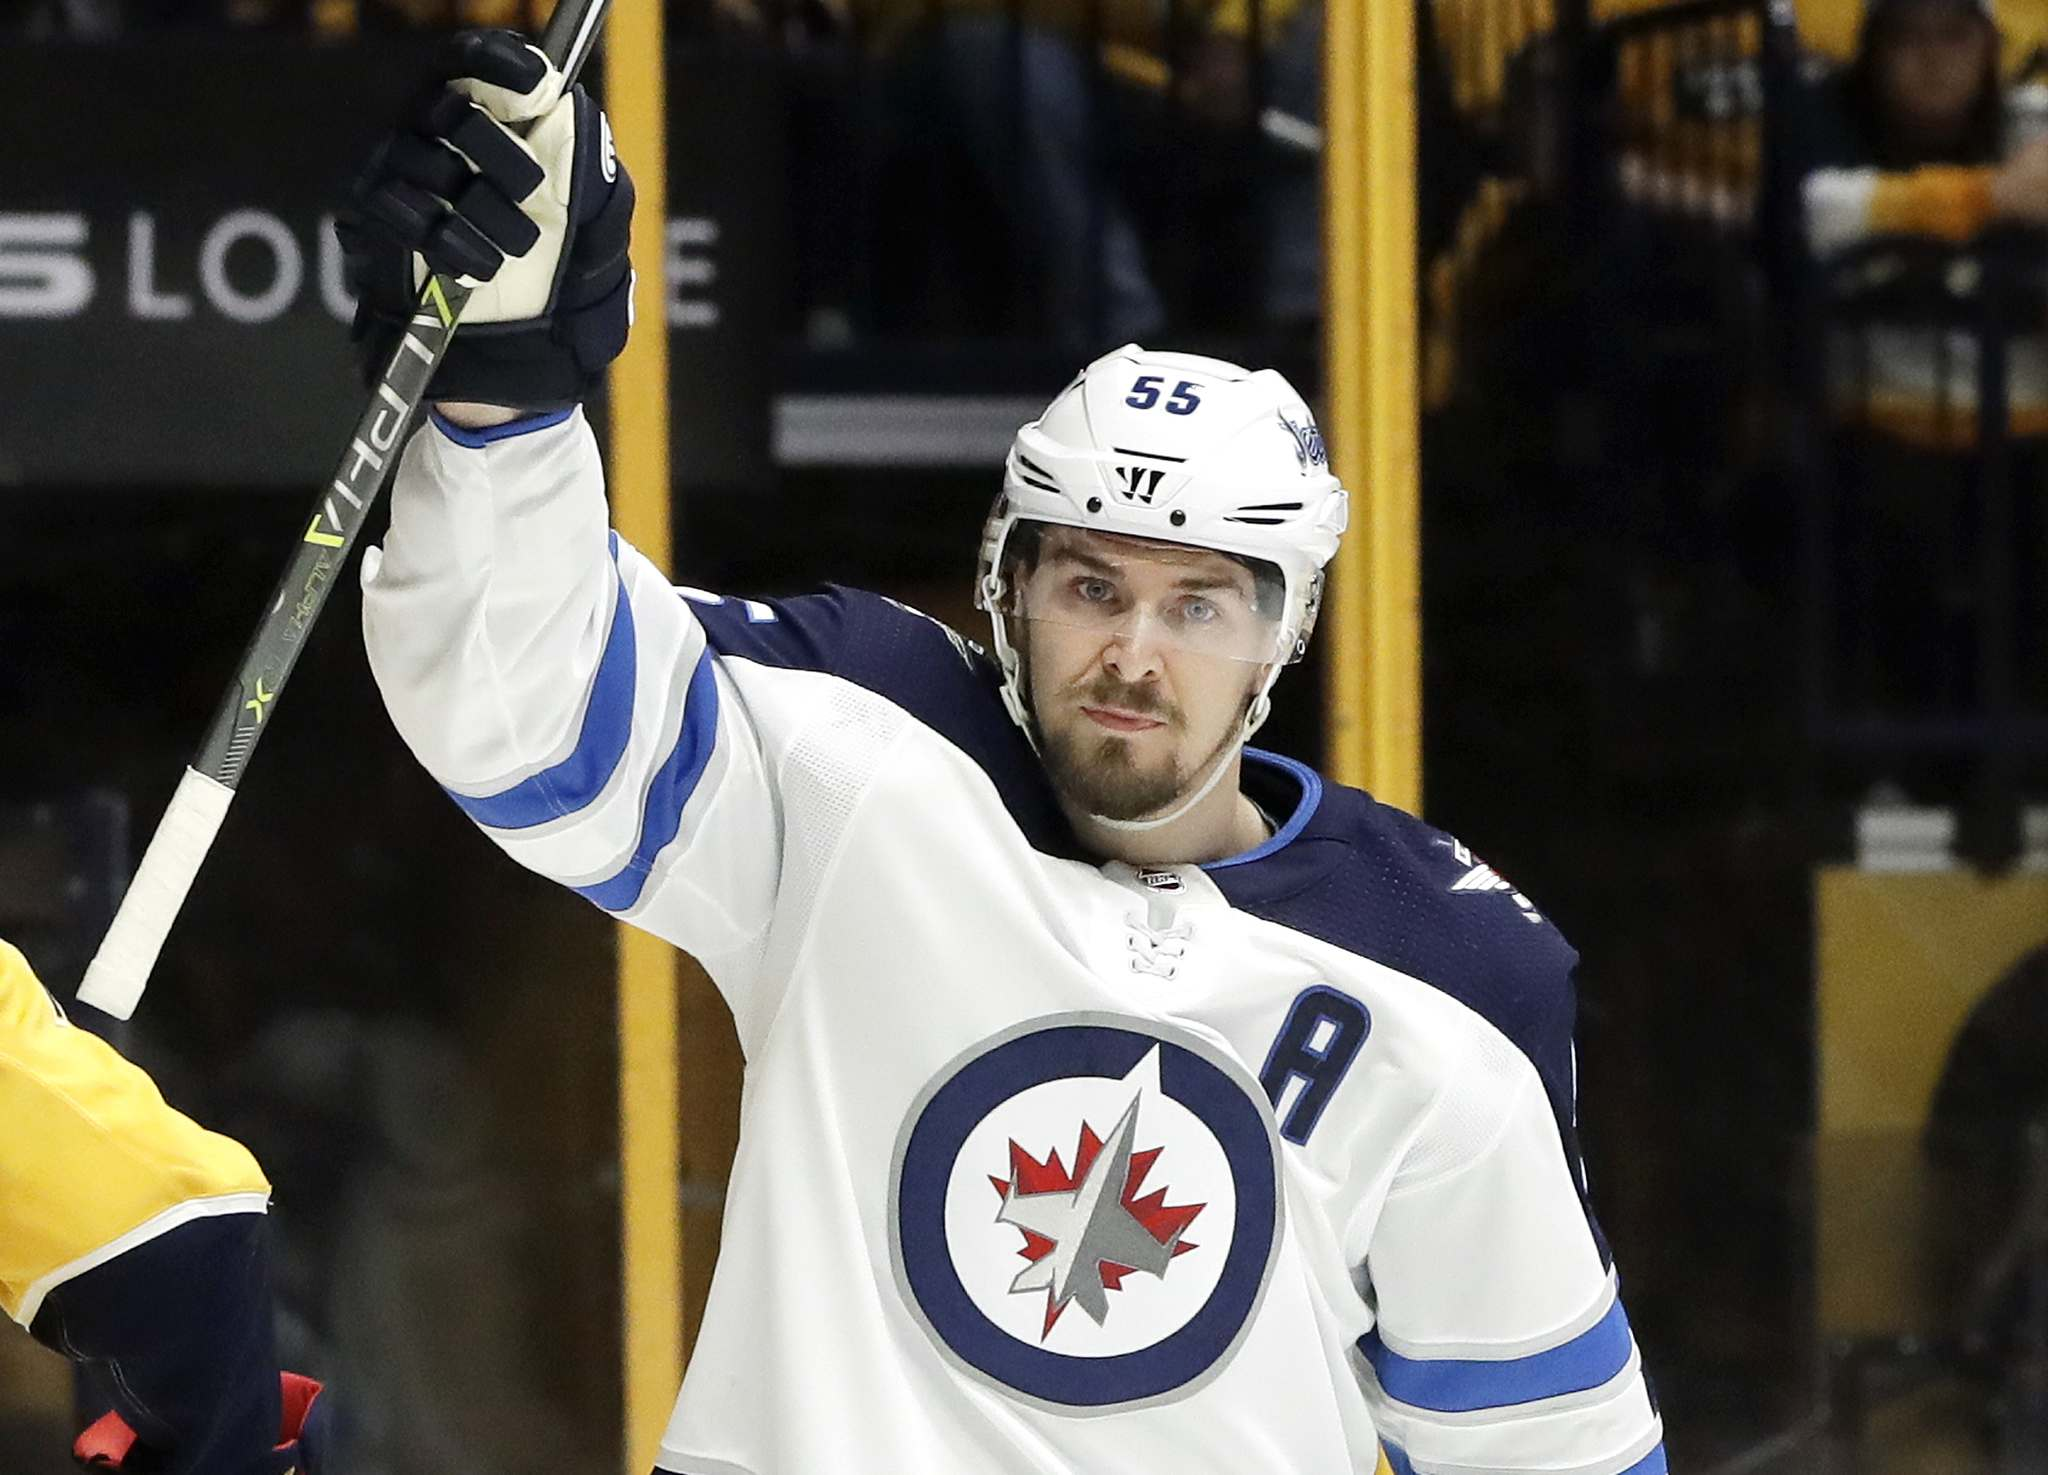 (AP Photo/Mark Humphrey)</p><p>Winnipeg Jets center Mark Scheifele celebrates after scoring a goal against the Nashville Predators. The Jets will need more production from players not named Scheifele if they are to have any chance of beating the Vegas Golden Knights in the third round of the playoffs.</p>